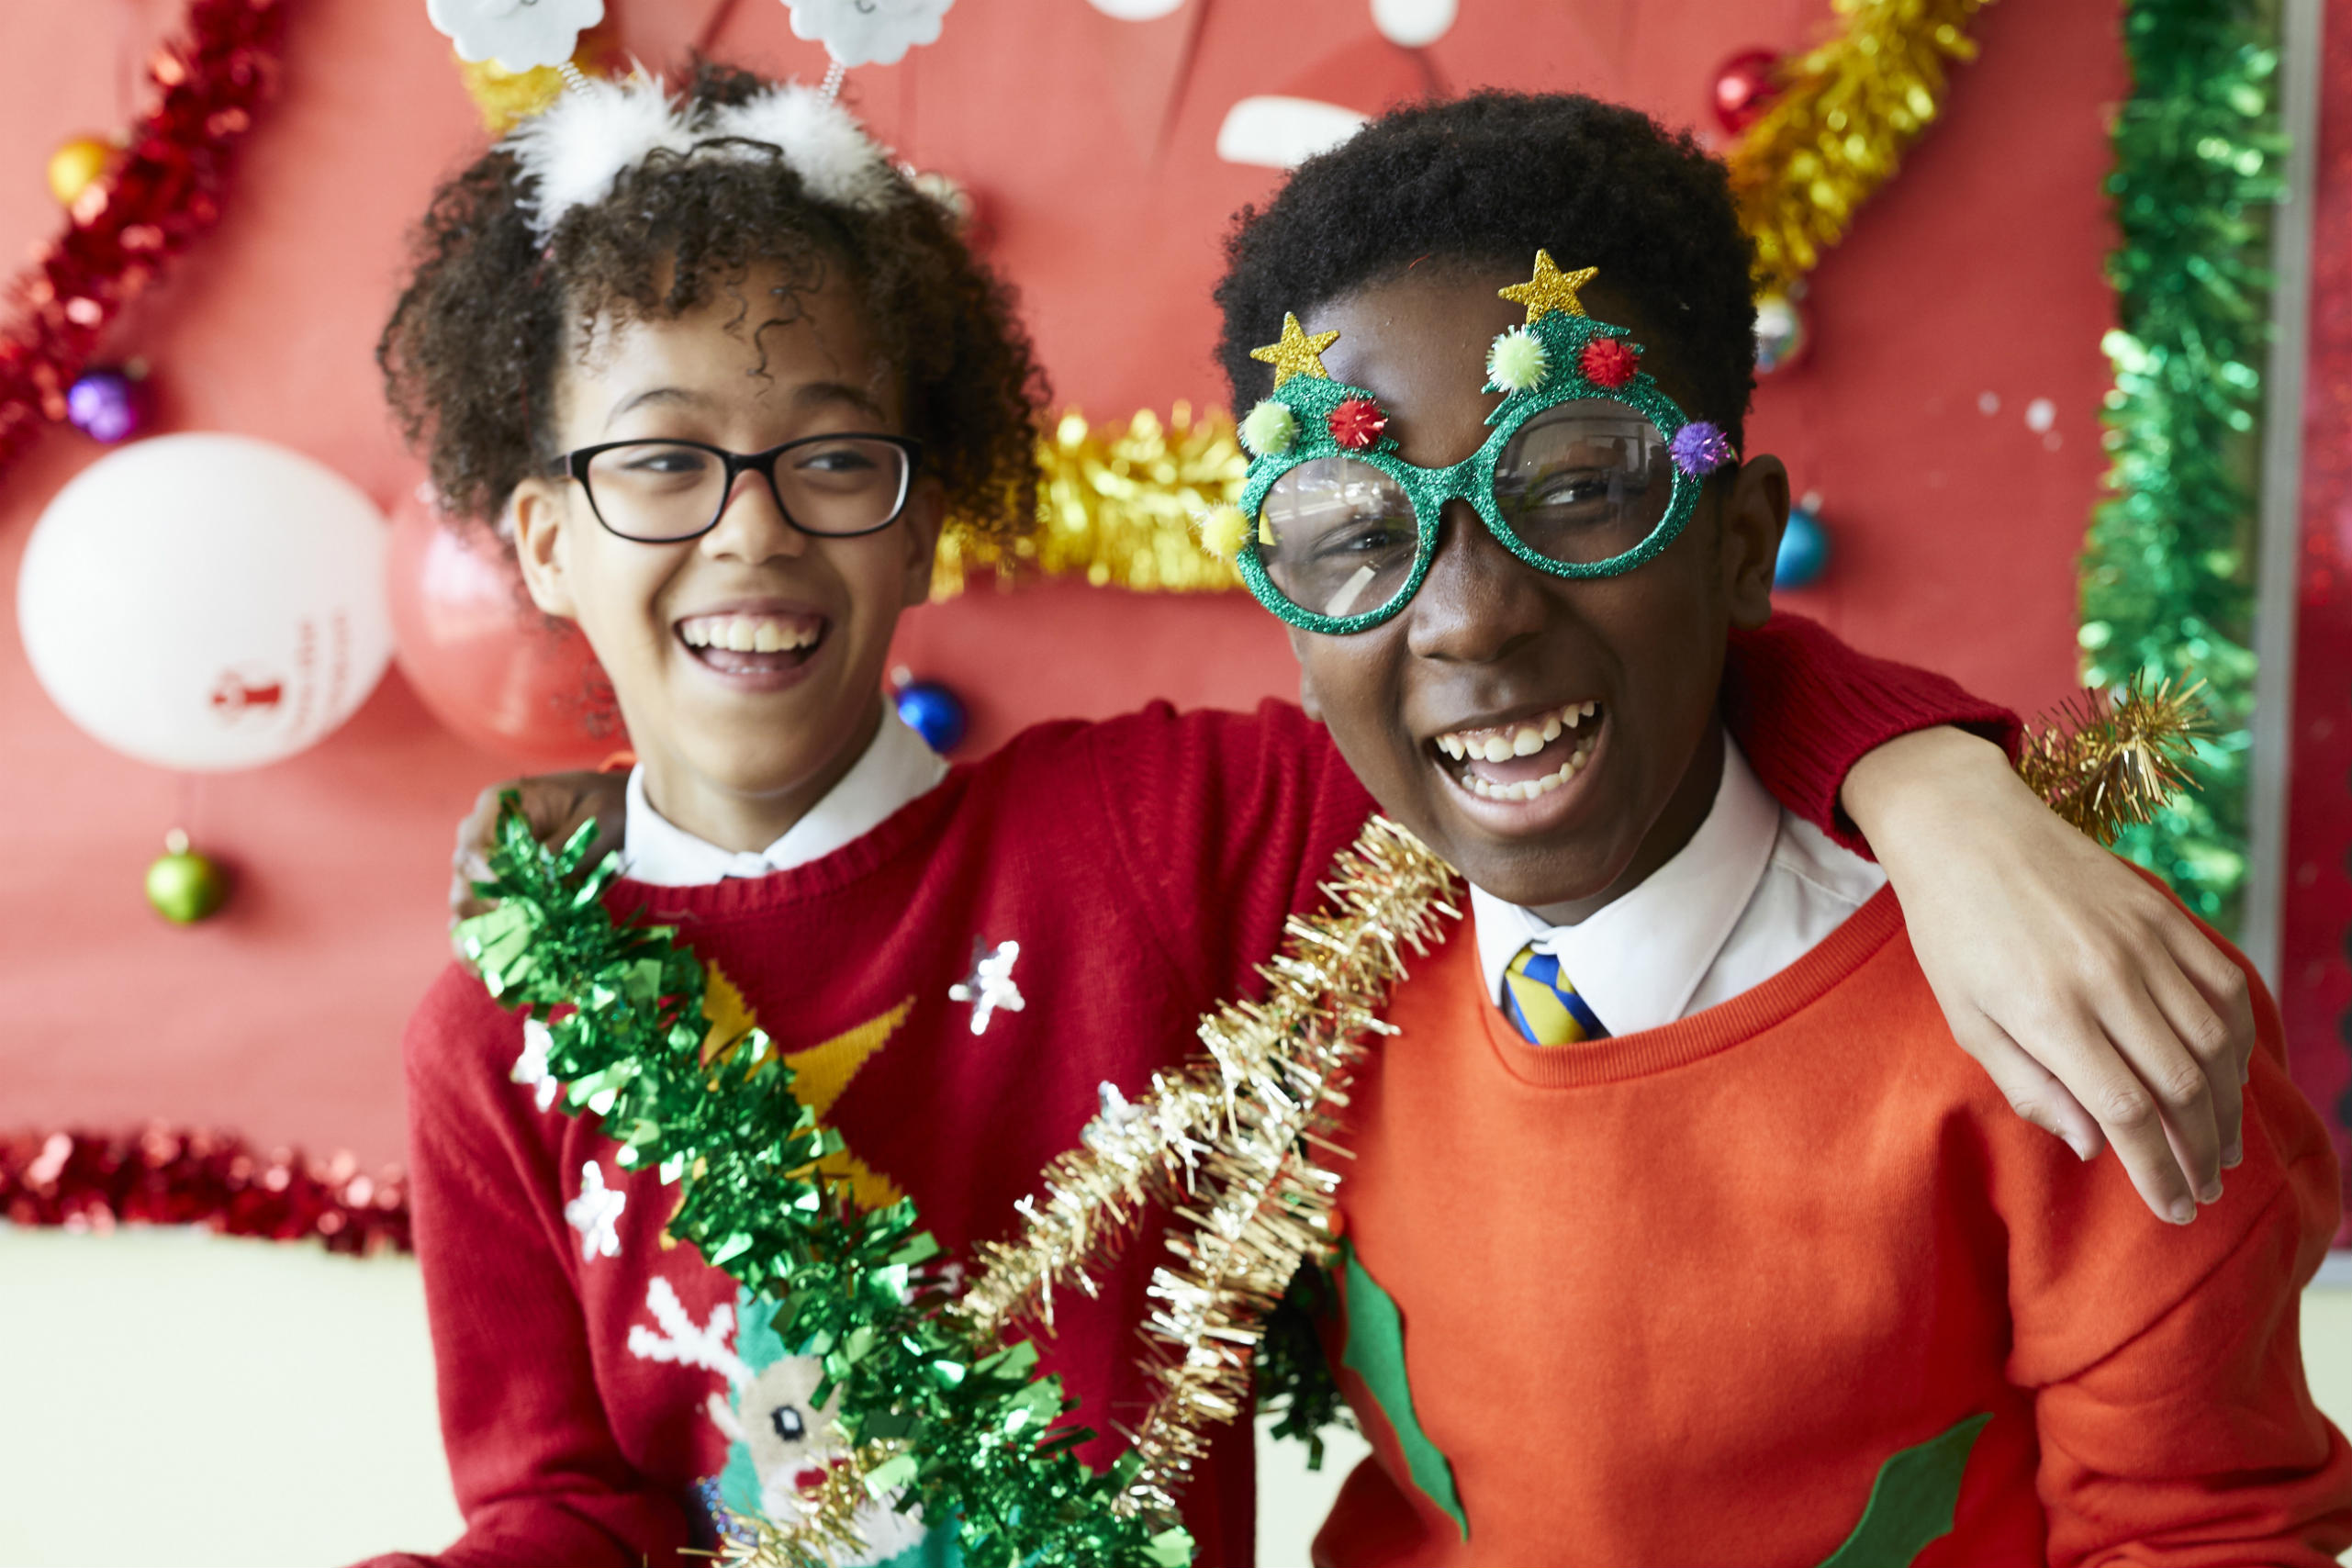 Secondary school children enjoying their Christmas Jumper Day activities at school